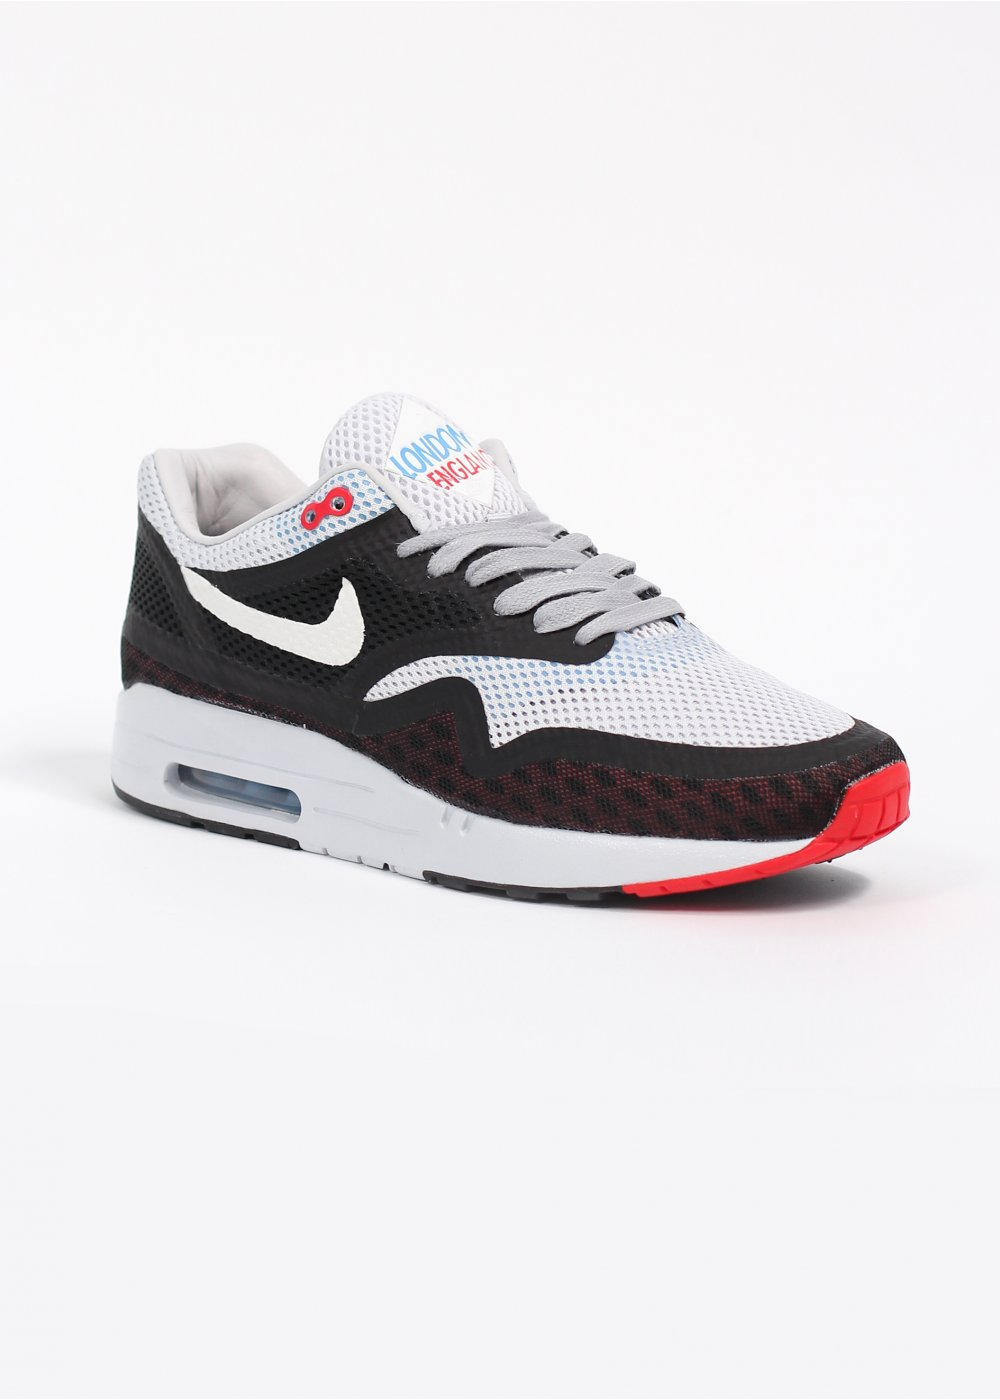 nike qs air max 1 breathe 39 city pack 39 london trainers. Black Bedroom Furniture Sets. Home Design Ideas